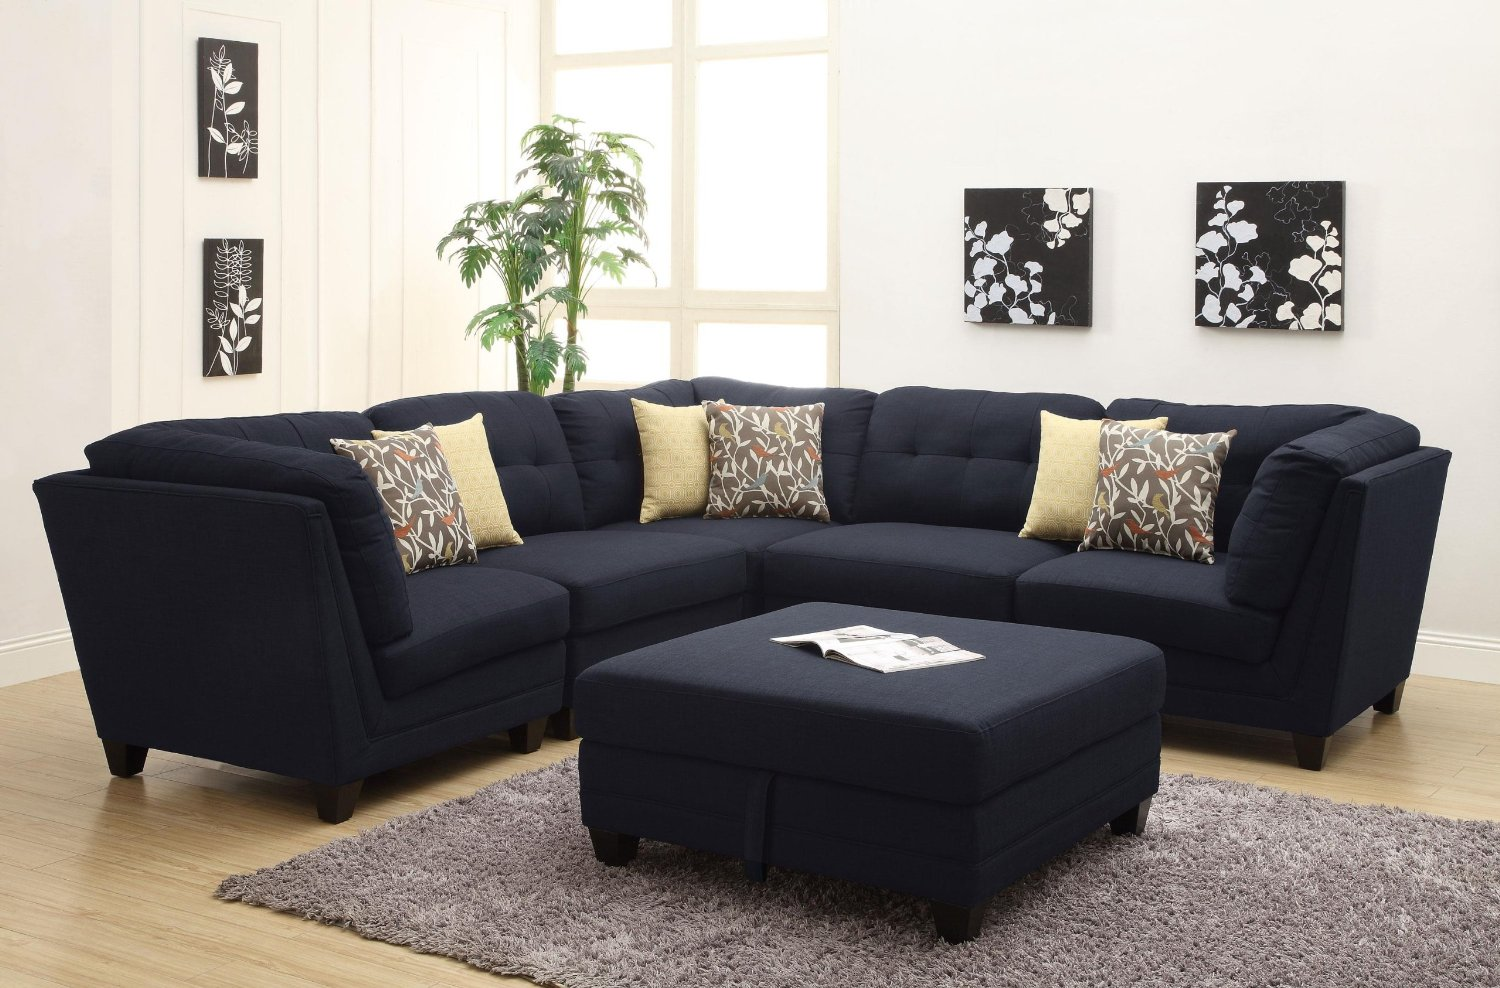 Most comfortable sofas homesfeed for Furniture sofas and couches